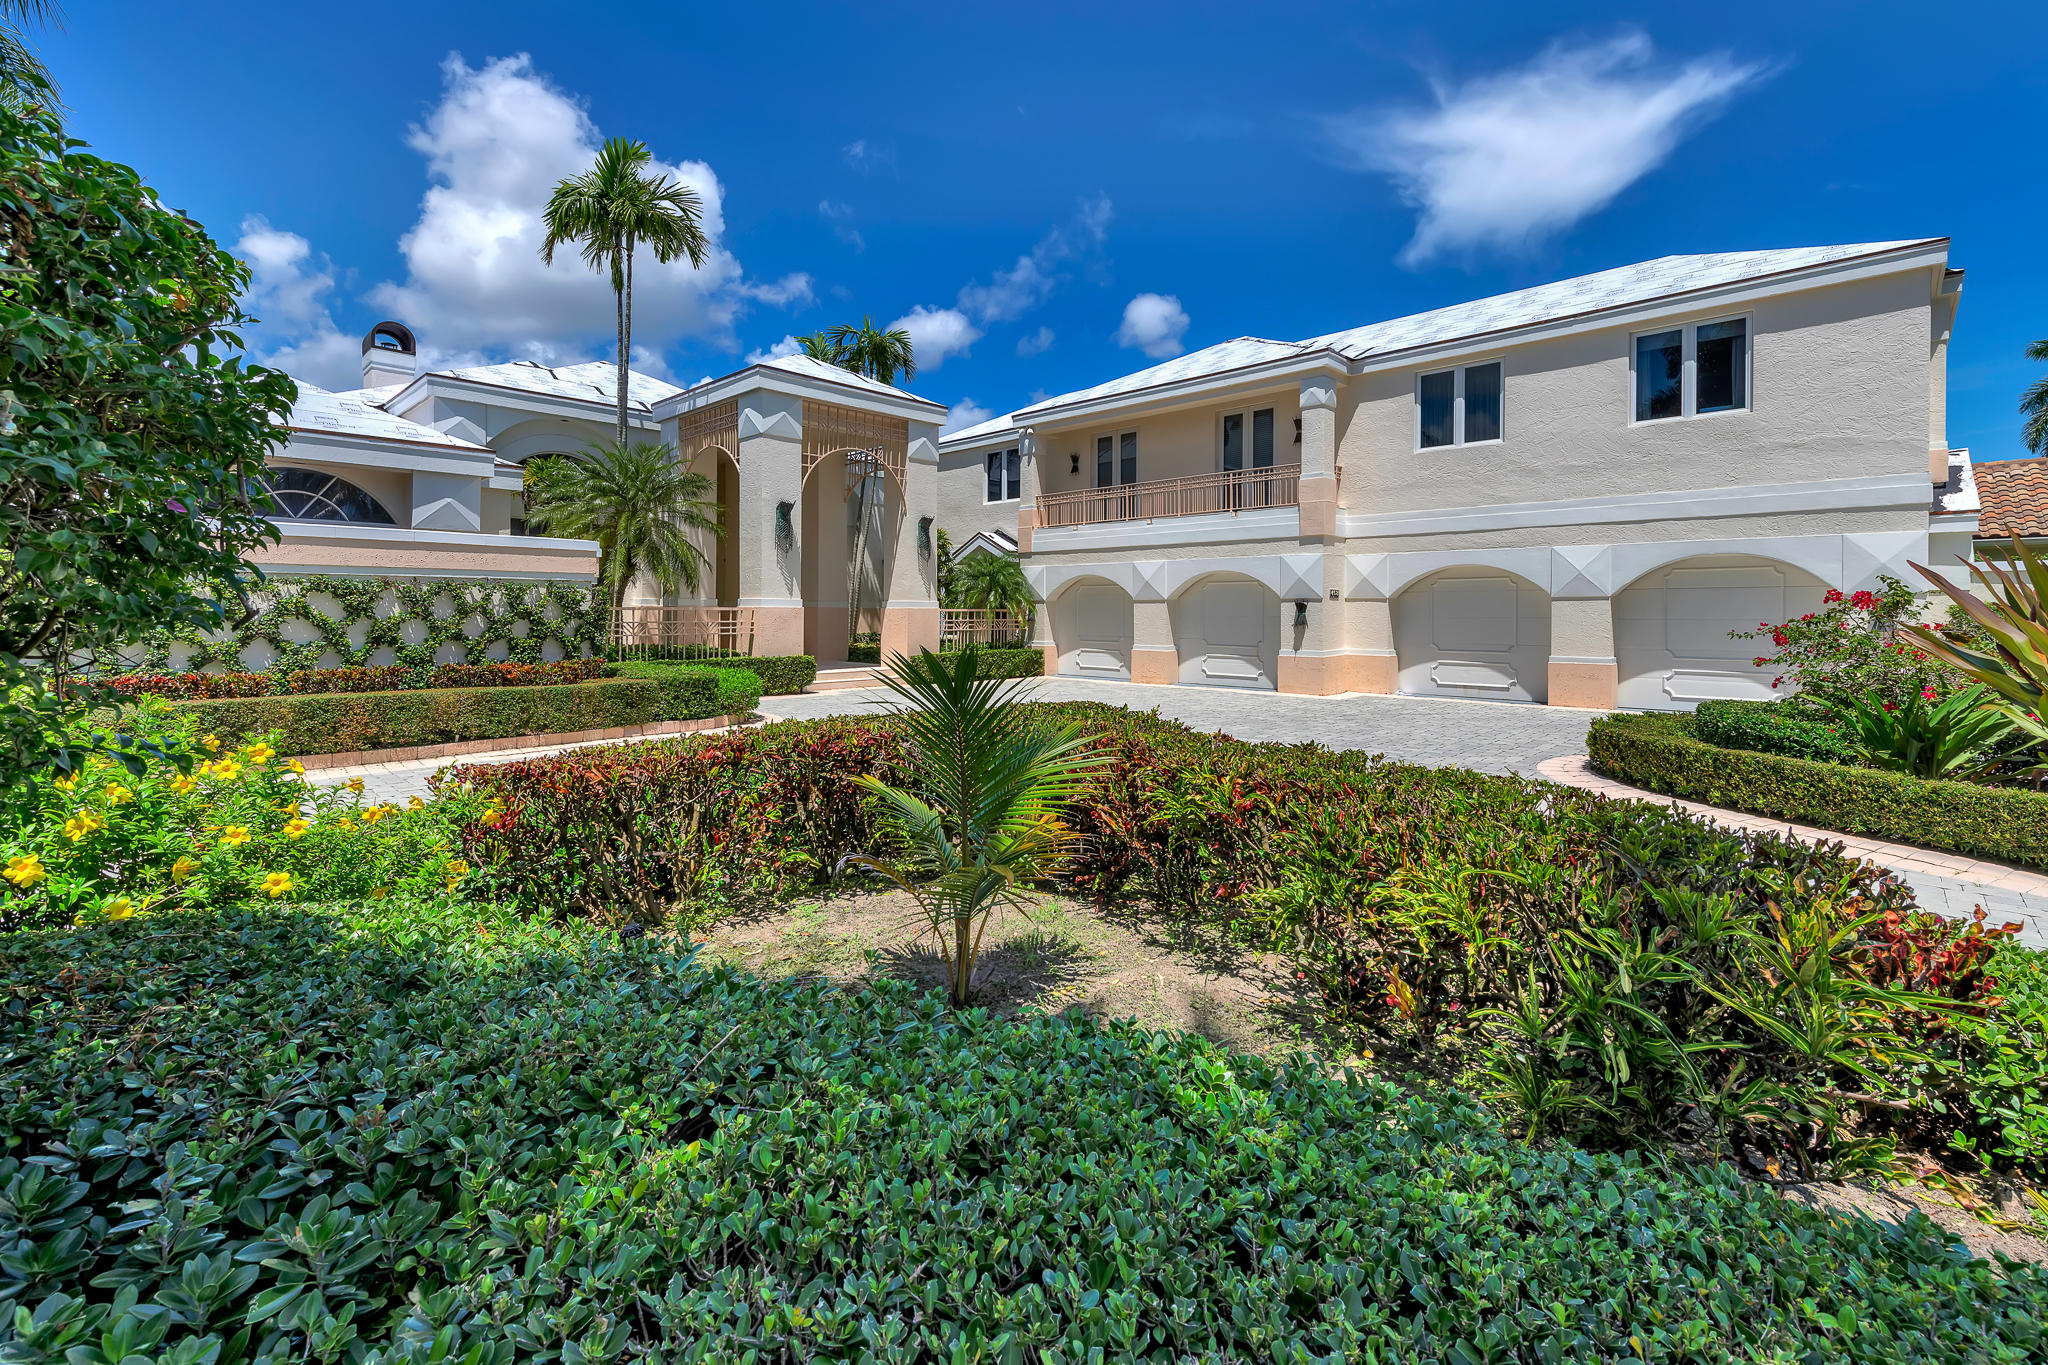 New Home for sale at 468 Mariner Drive in Jupiter